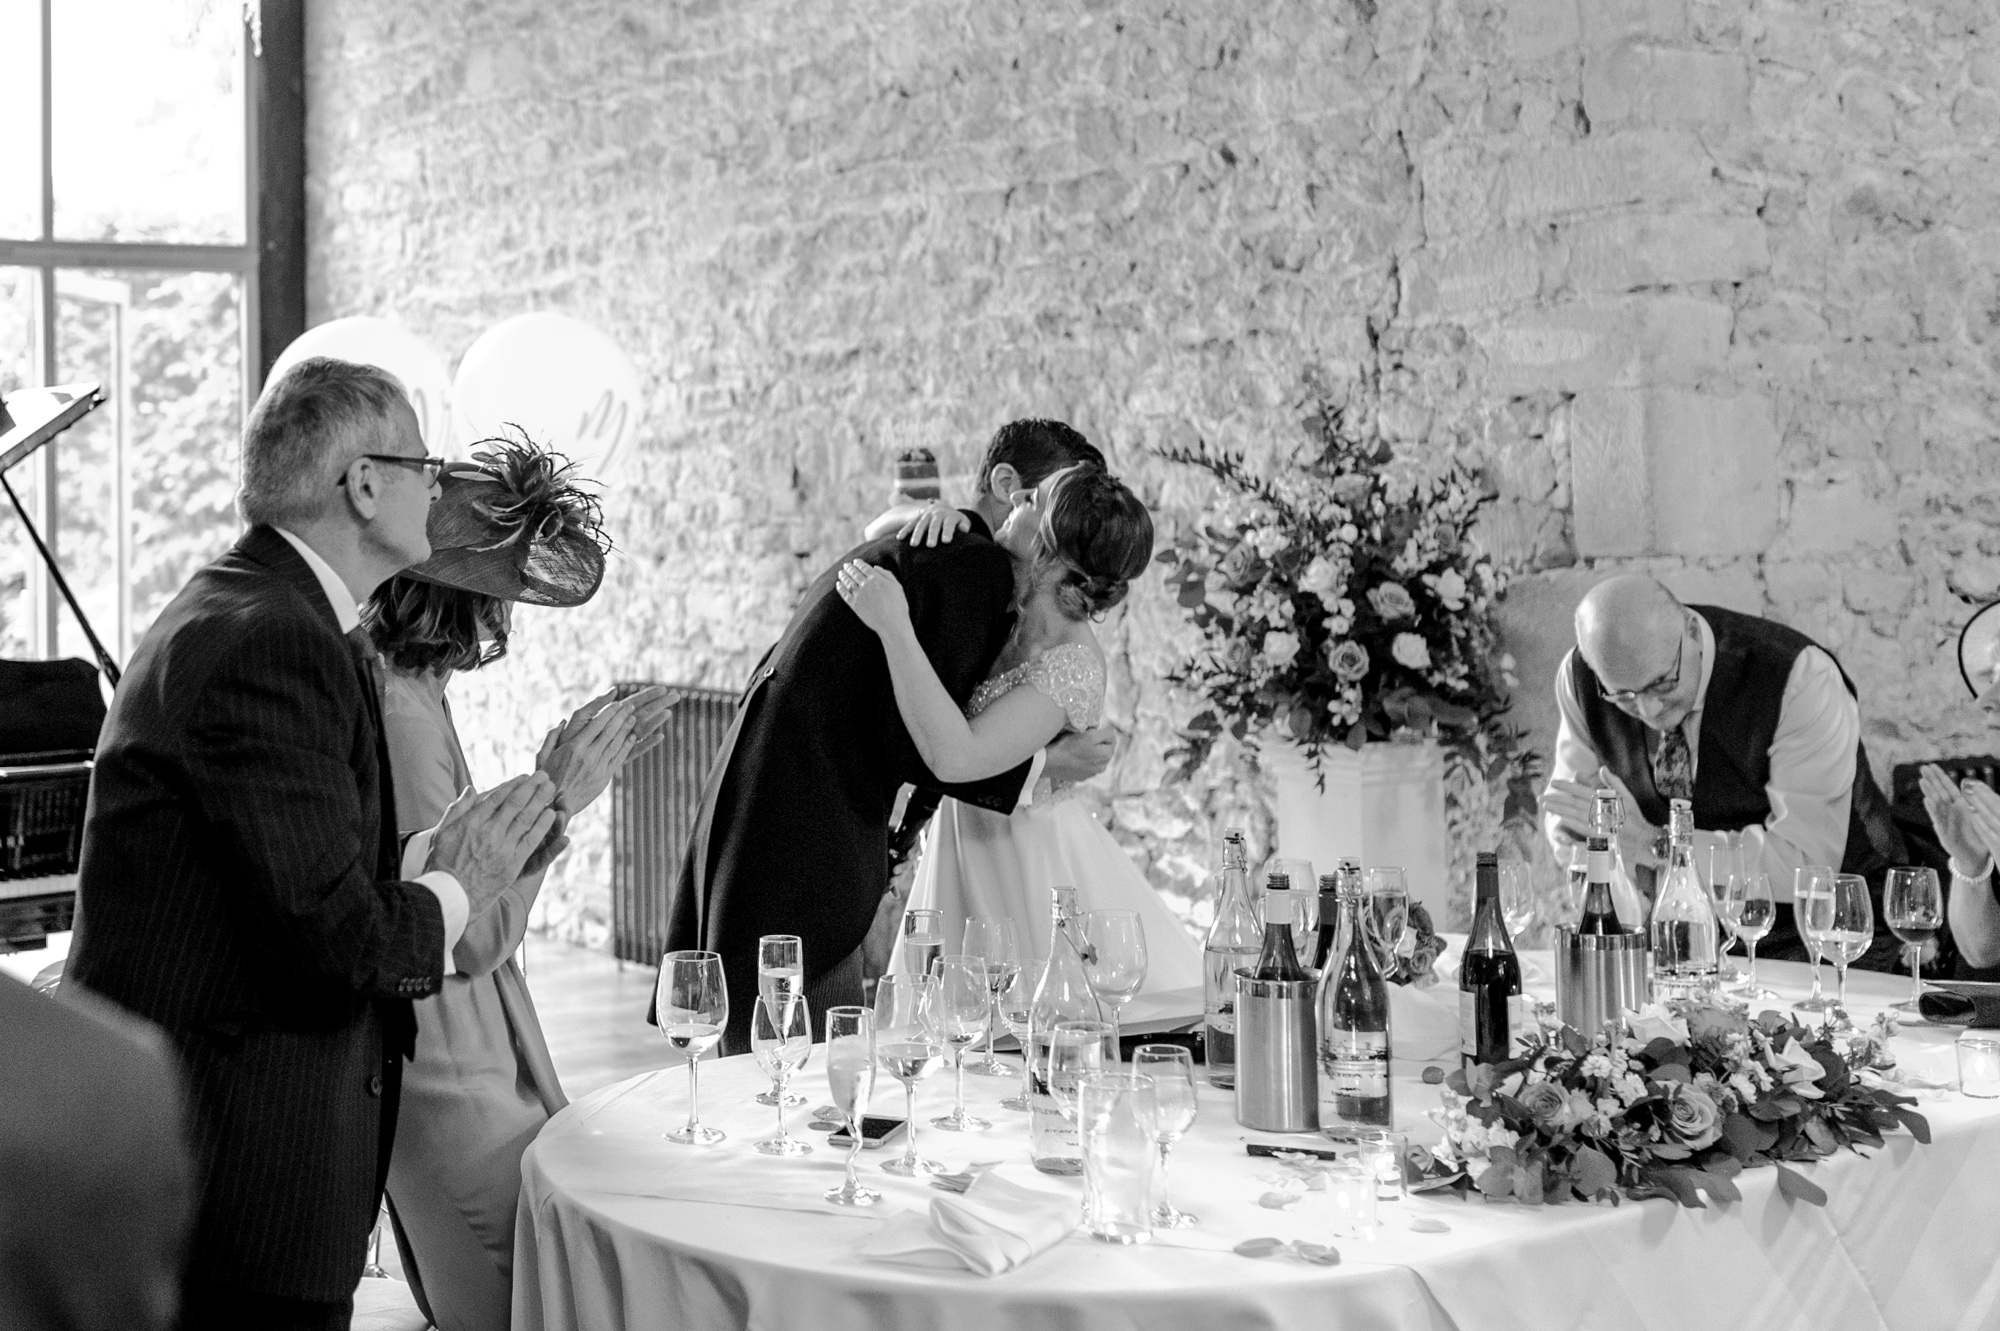 Notley Barn Wedding 26.10.18 29.jpg